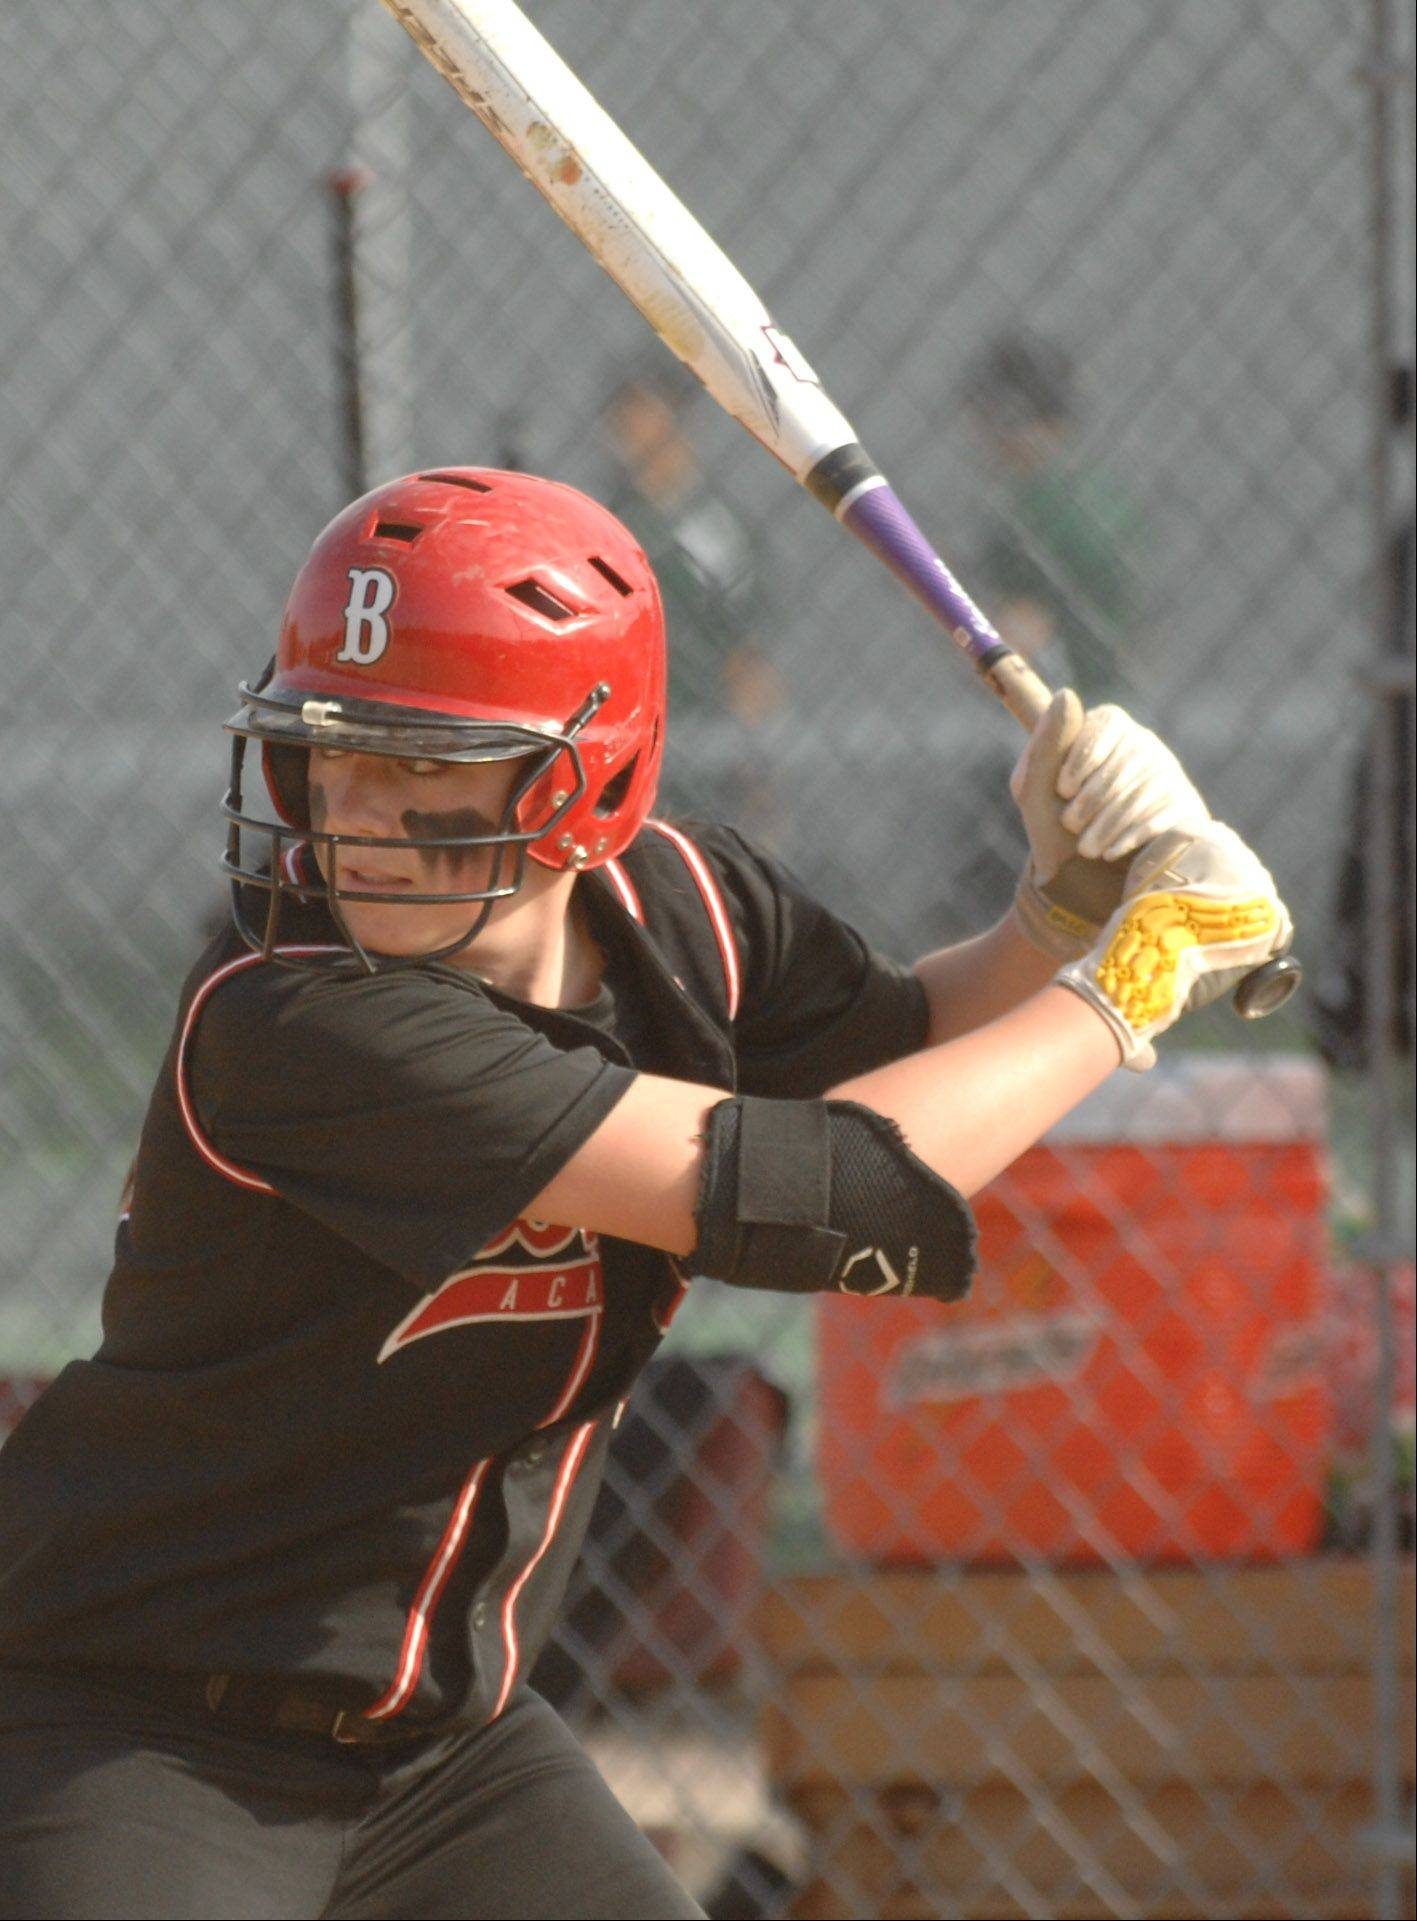 Maeve McGuire of Benet is at bat during the Downers Grove North at Benet softball game Tuesday.